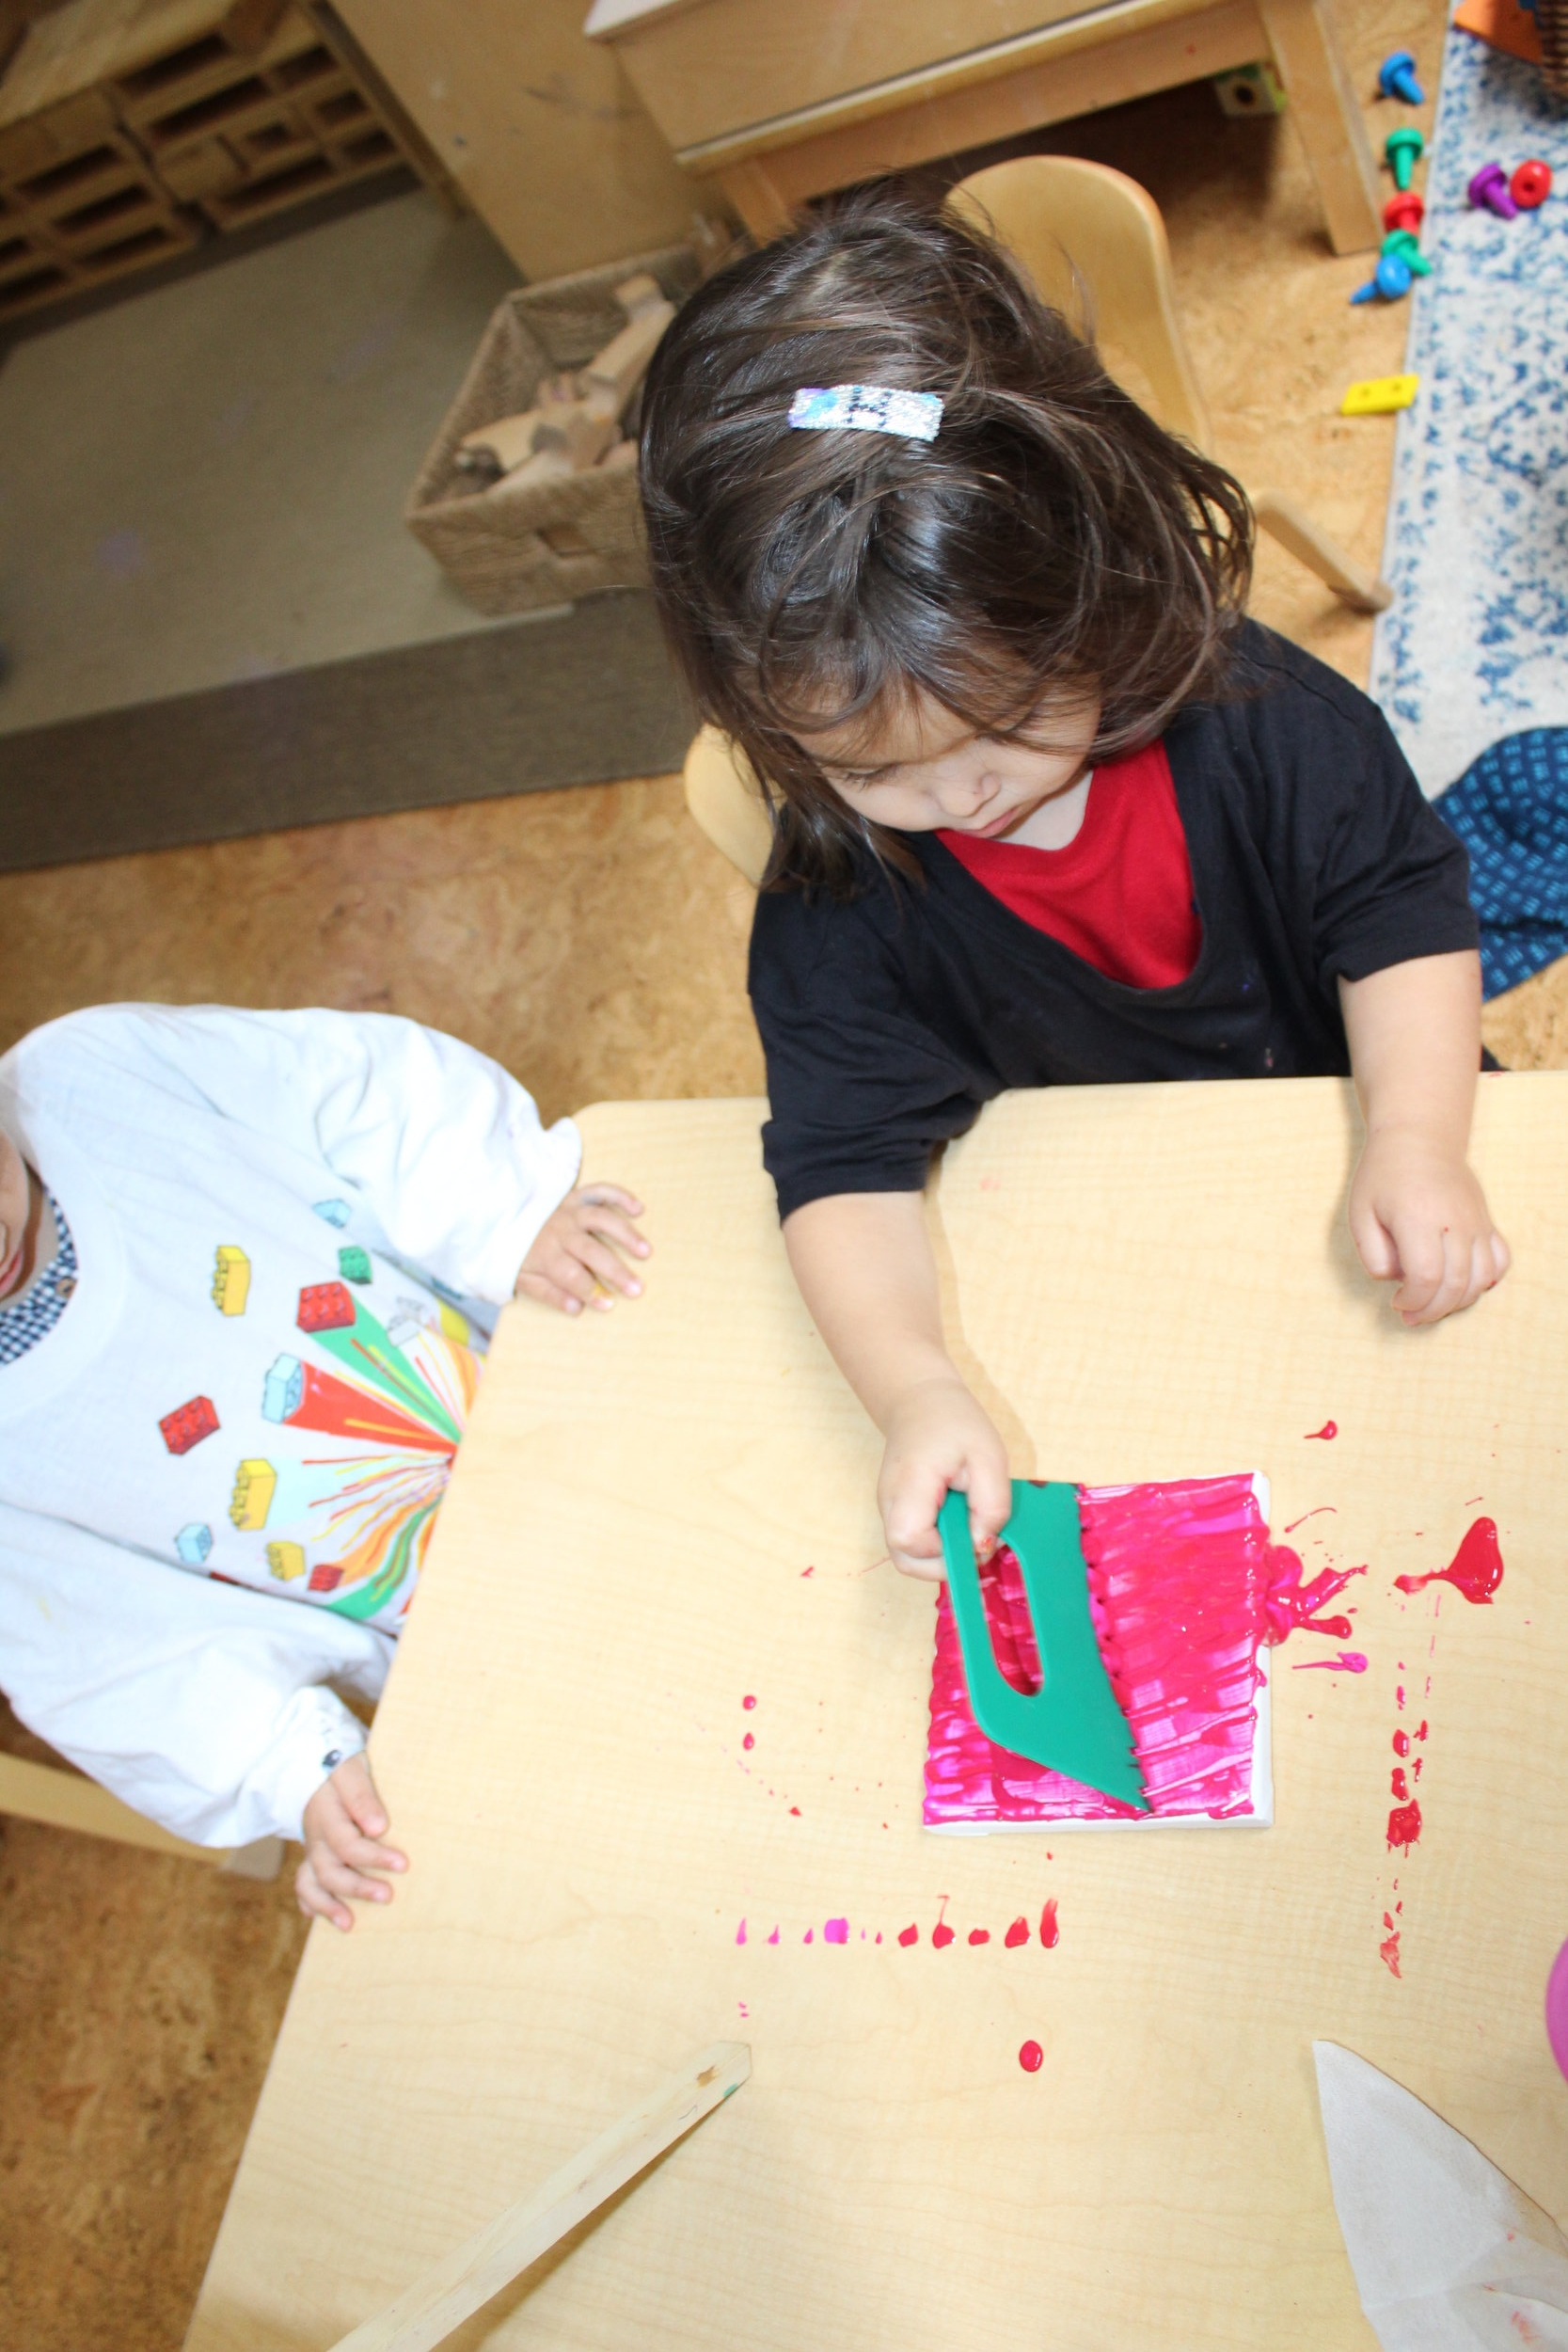 The children used one of the tools that are used for clay or play dough exploration, to create unique patterns on their art pieces.